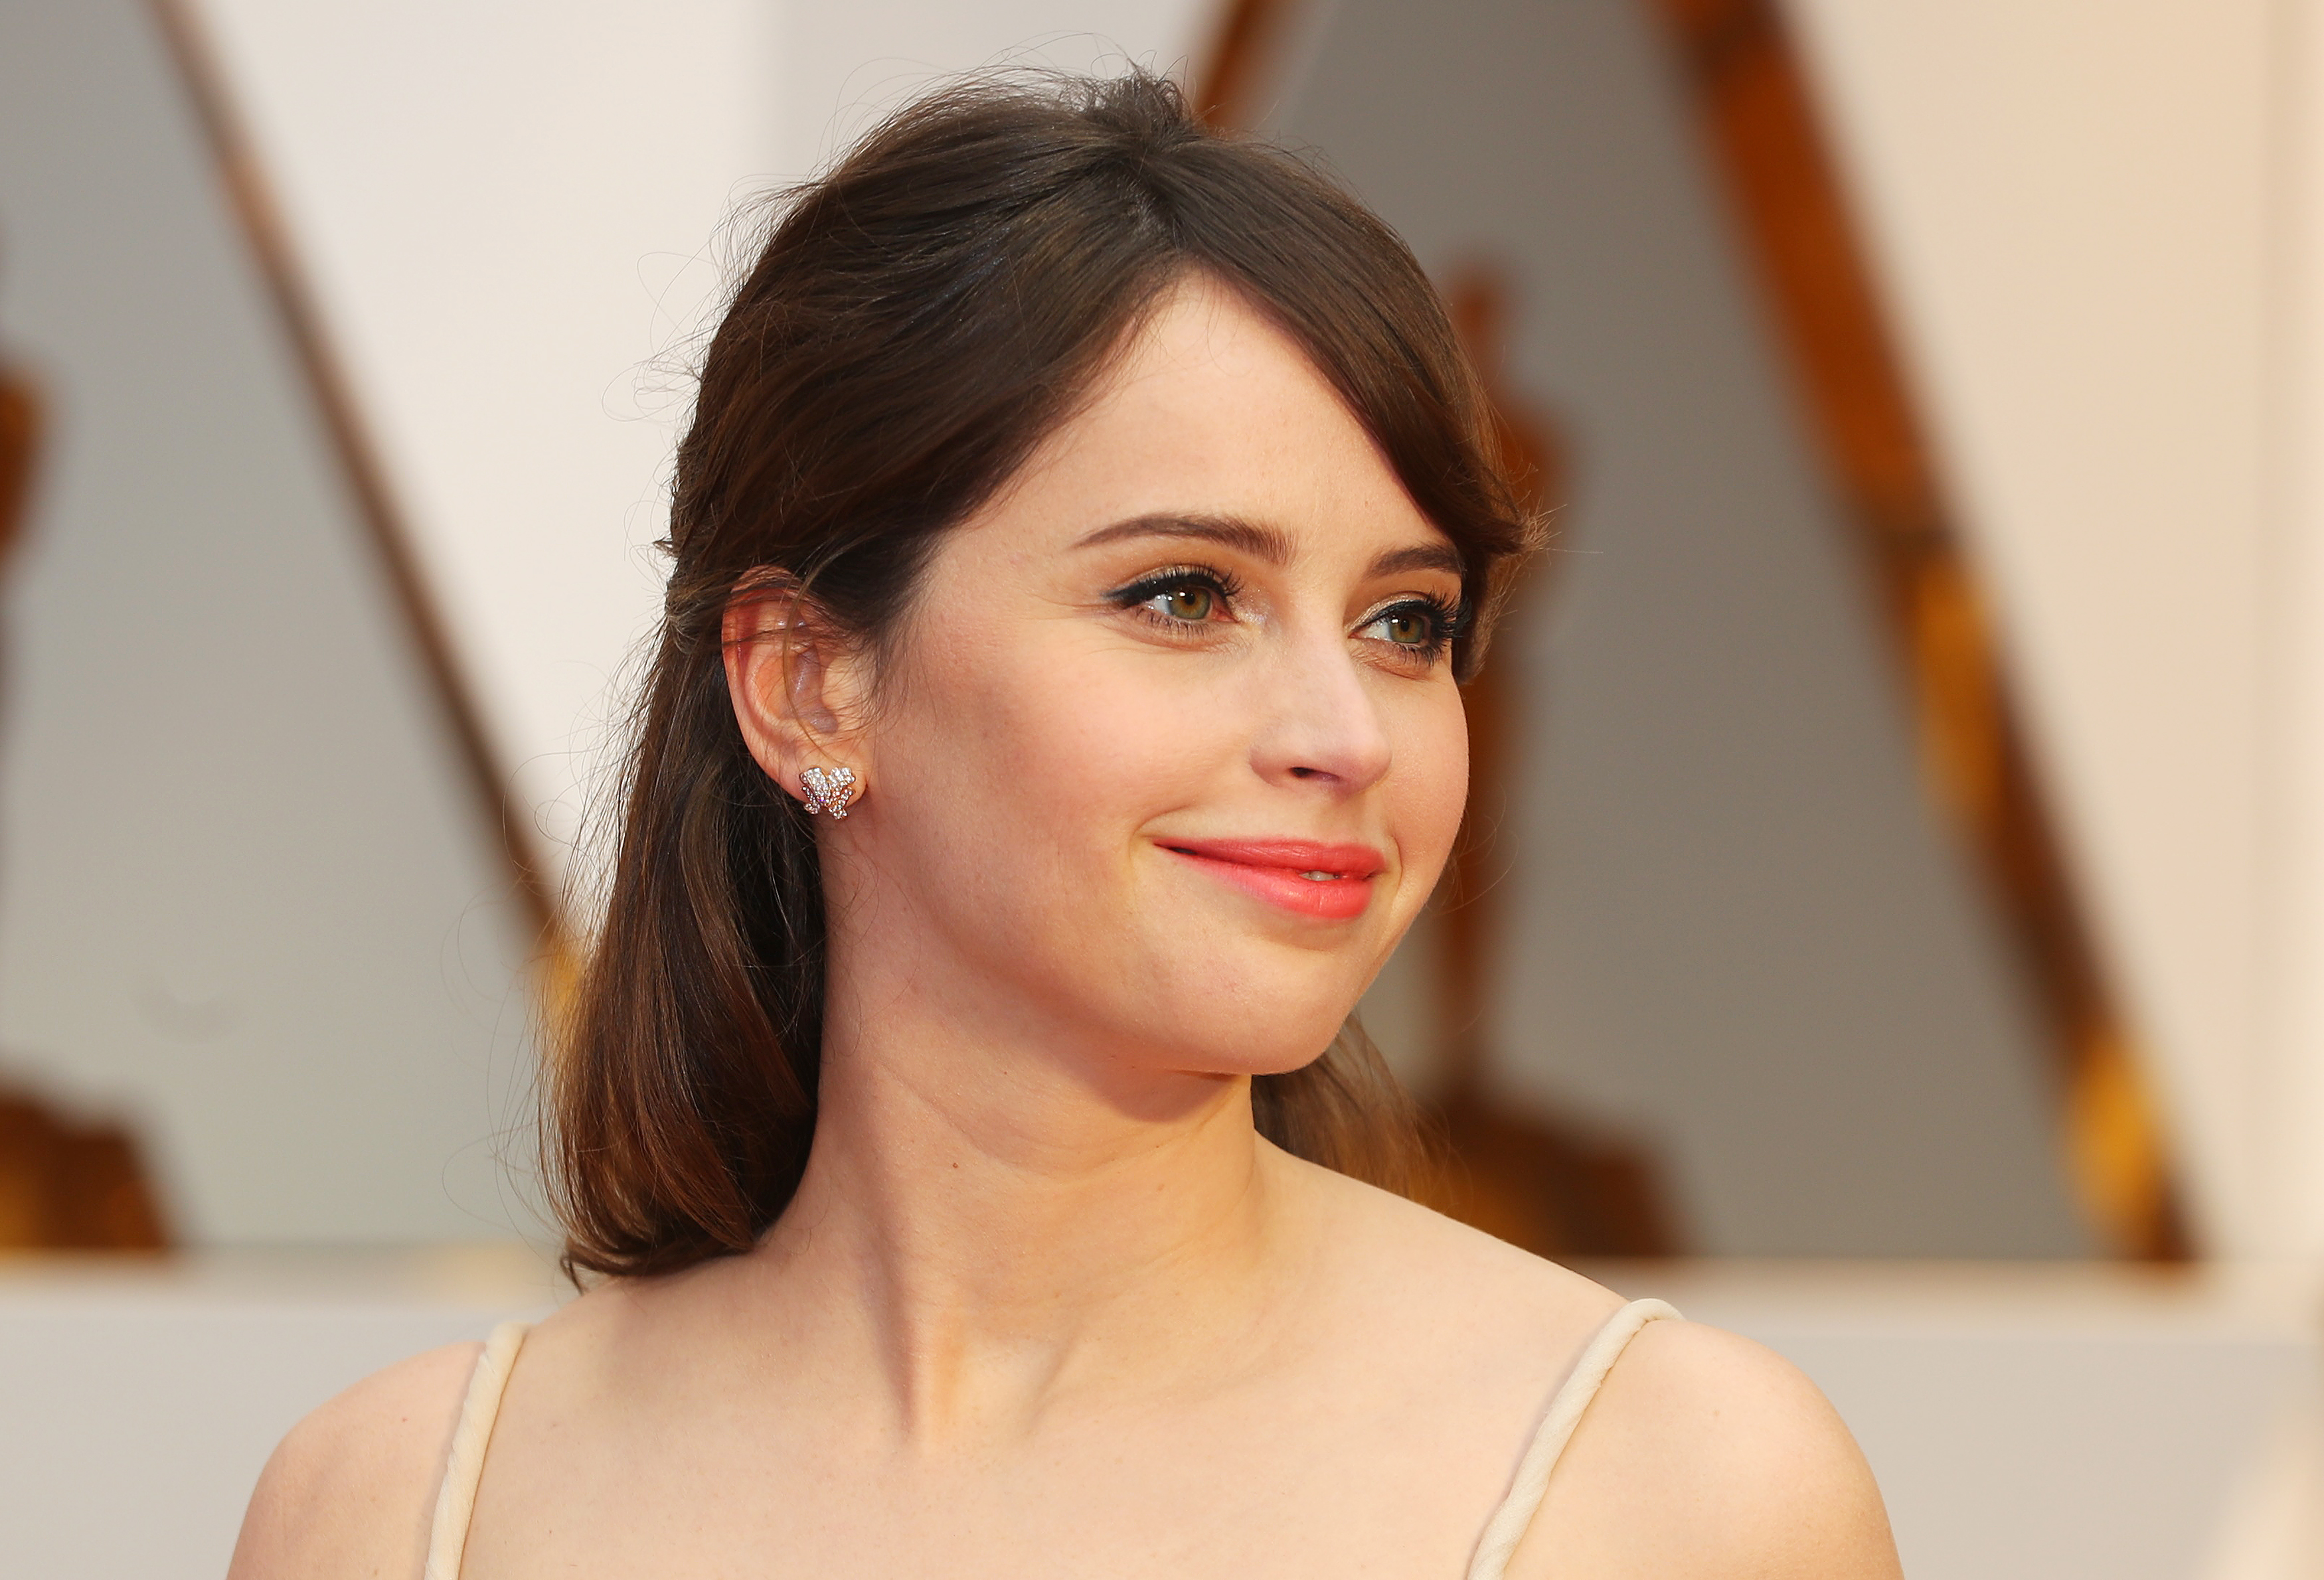 Actress Felicity Jones at the 89th Academy Awards. REUTERS/Mike Blake